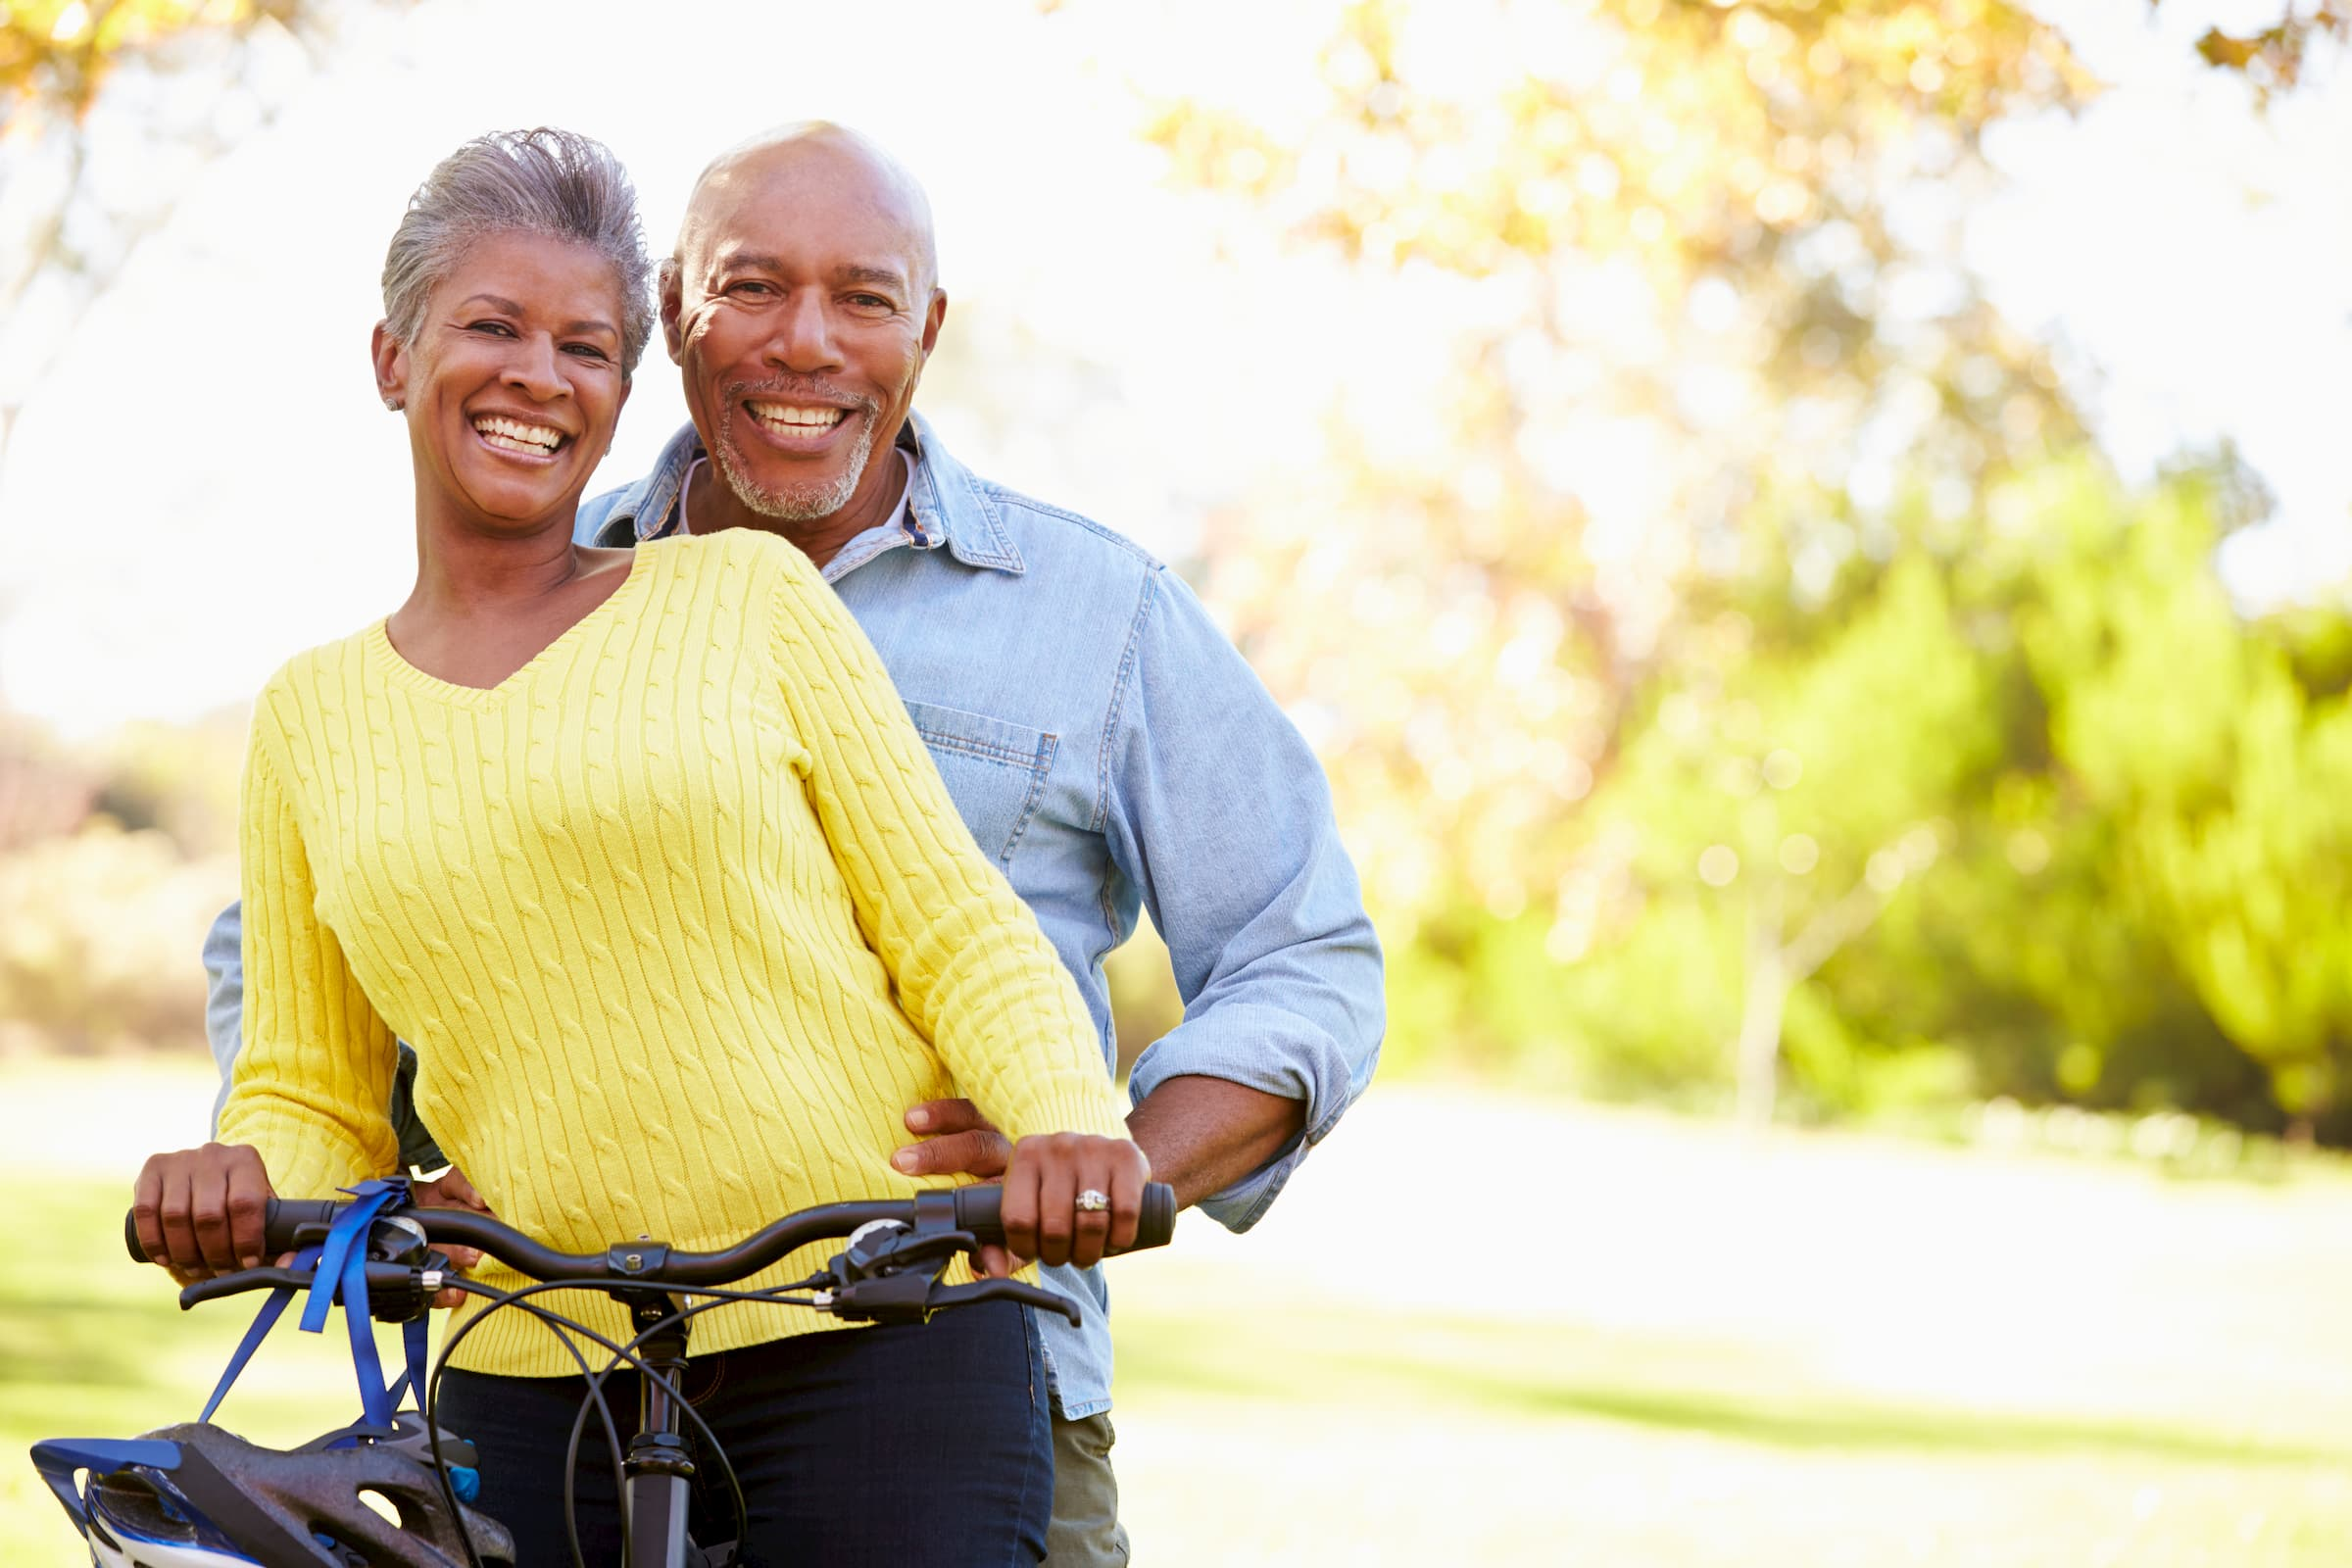 black senior couple in yellow and blue shirt standing outside on bicycle